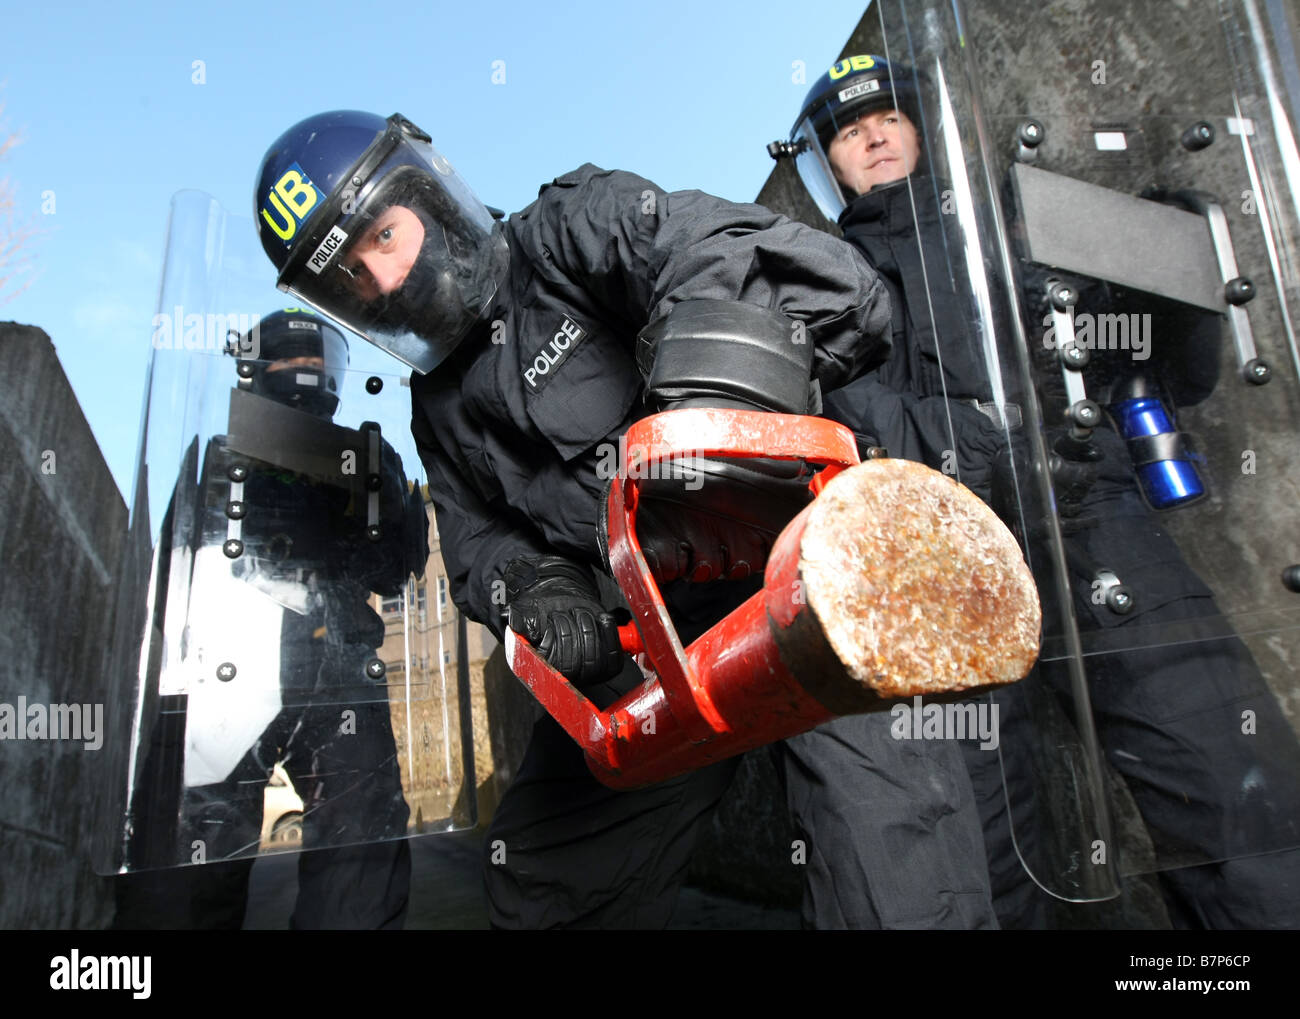 Police Helmet Uk Stock Photos & Police Helmet Uk Stock Images - Alamy